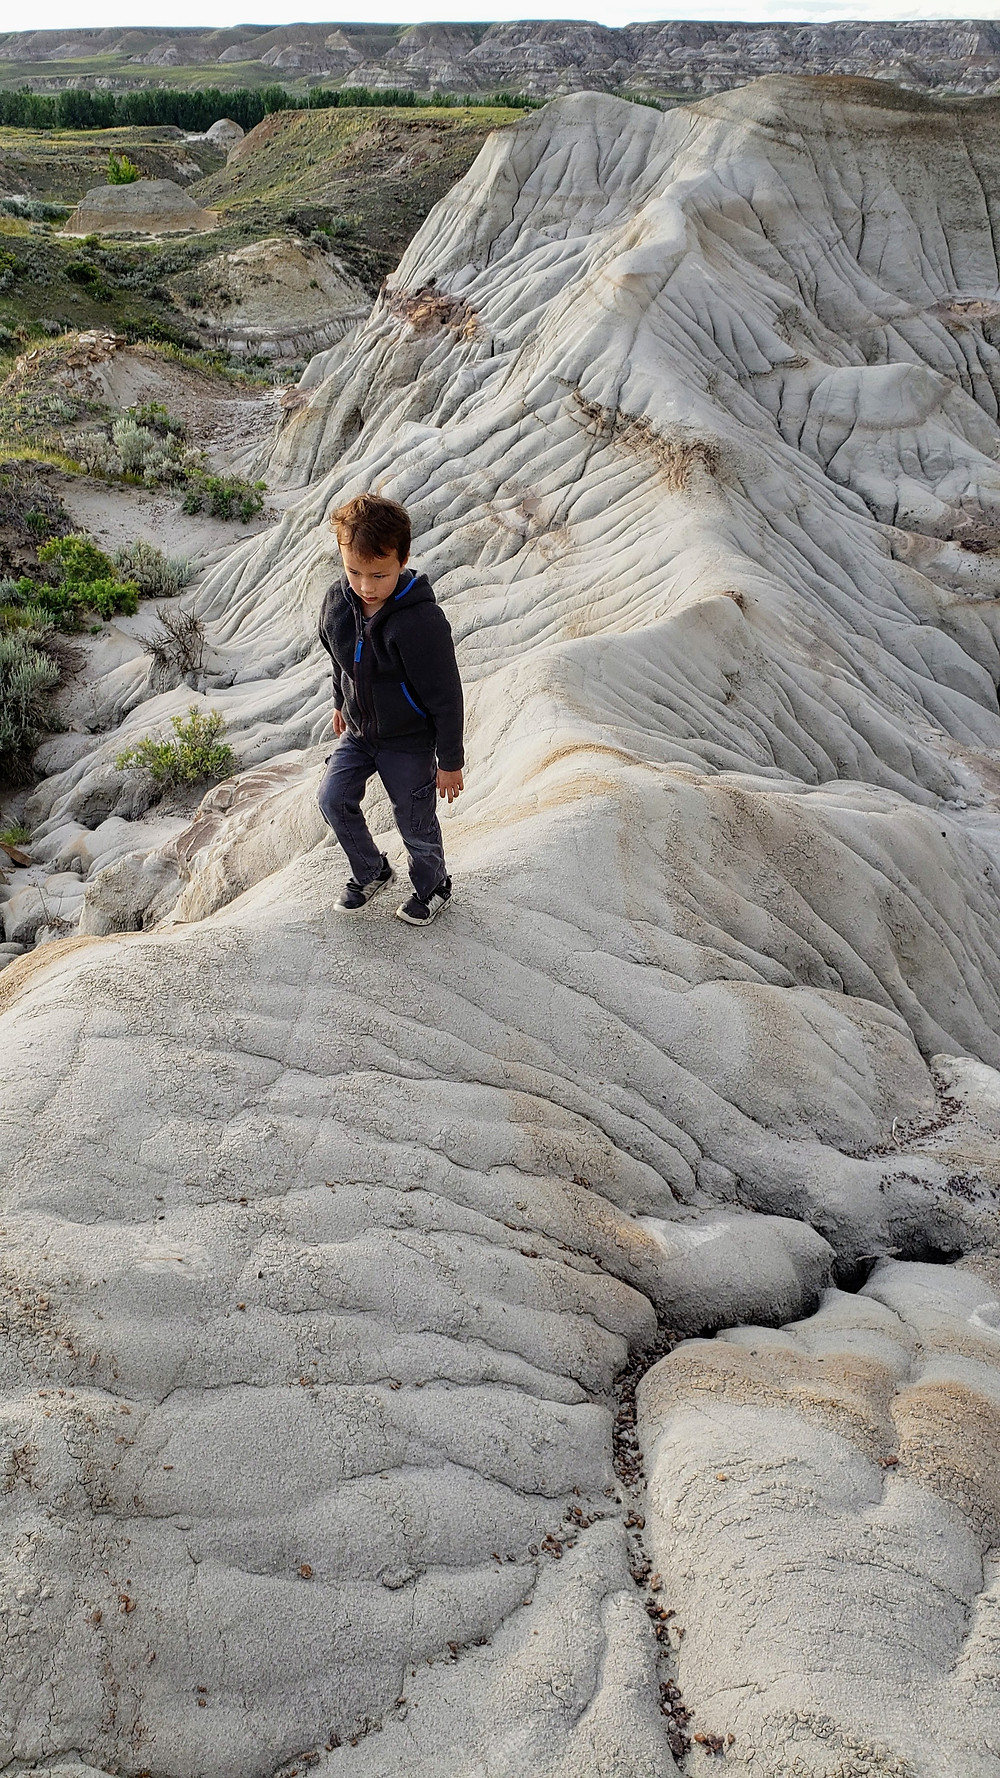 Hiking in the badlands at sunset with kids, Dinosaur Provincial Park, Alberta